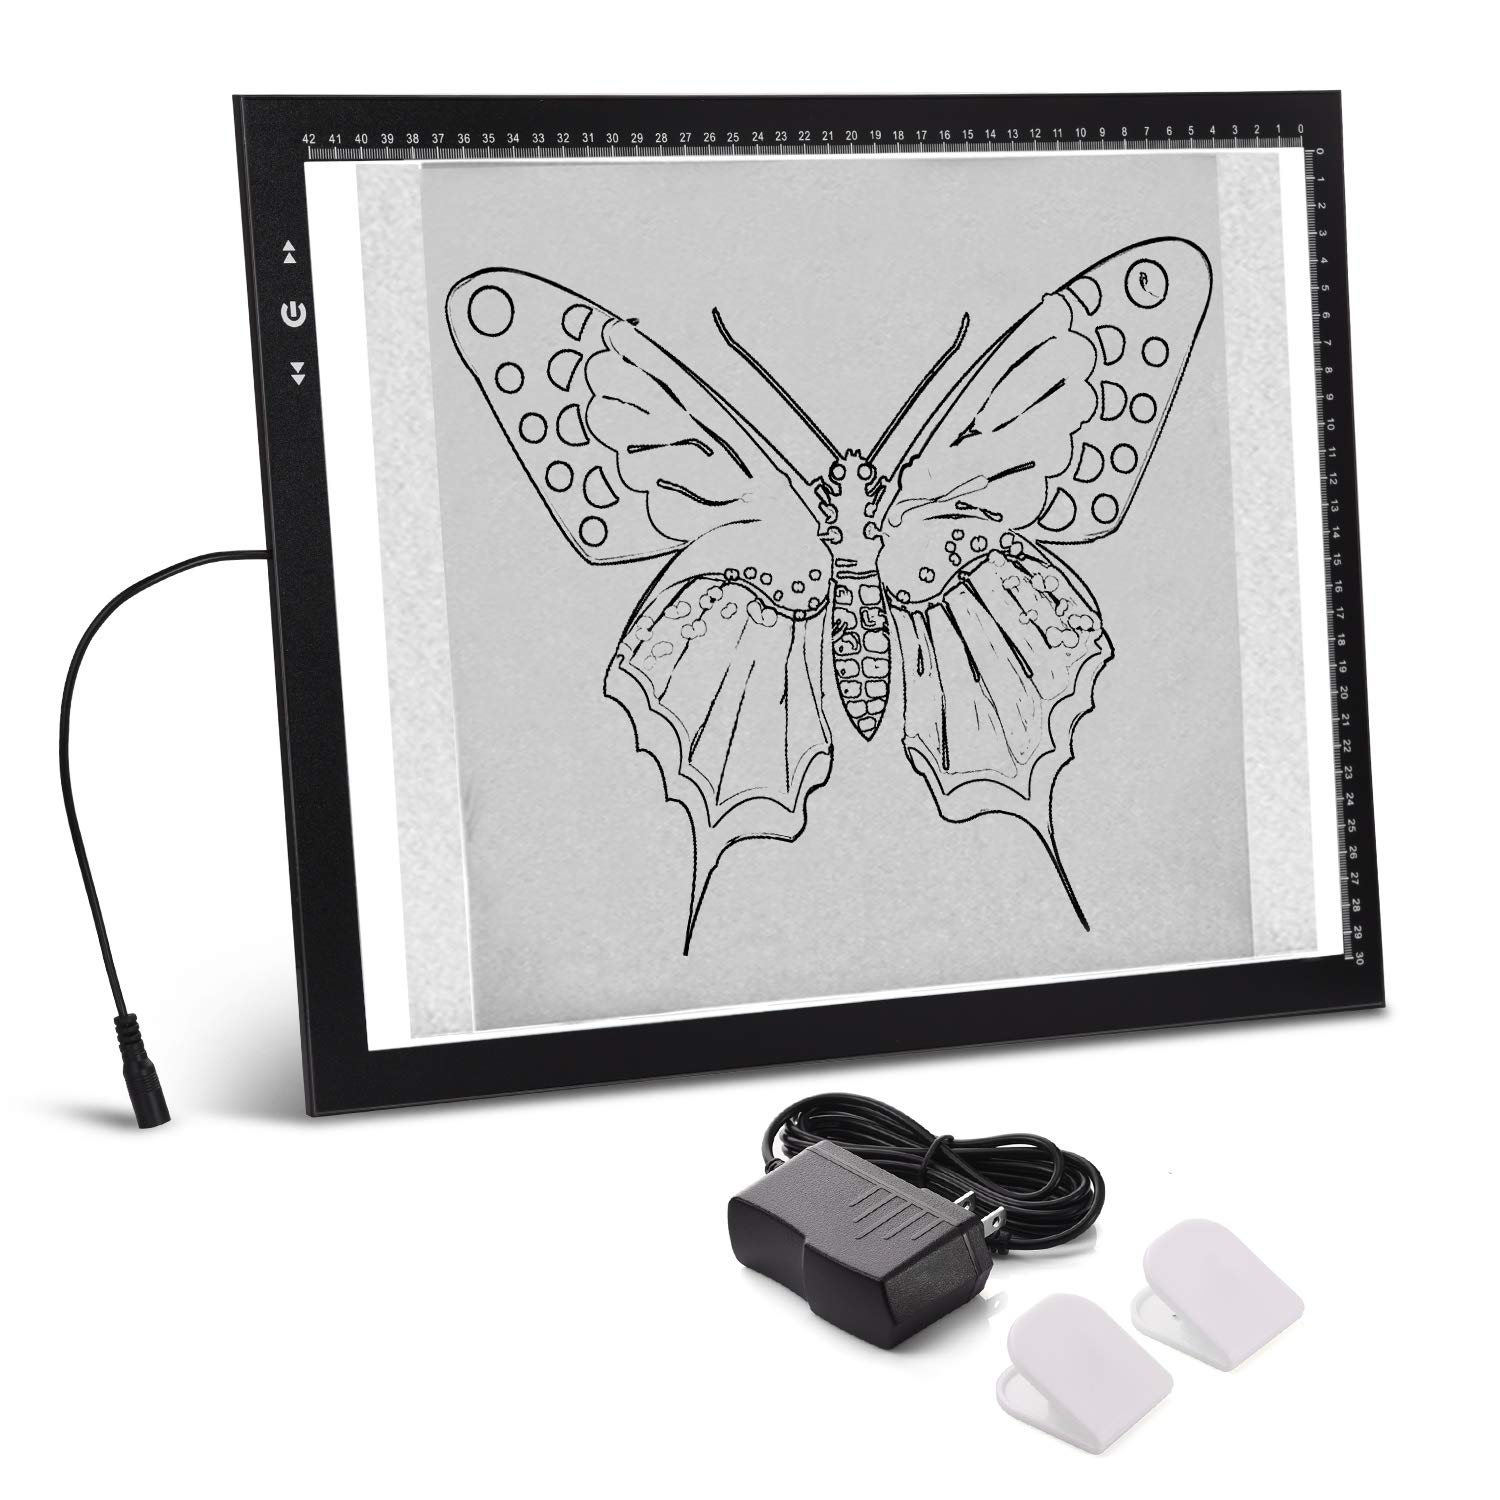 A3 Light Box Light Pad Aluminium Frame Touch Dimmer 11W Super Bright Max 3500 Lux with Free Carry/Storage Bag 2 Years Warranty (A3 Light pad)